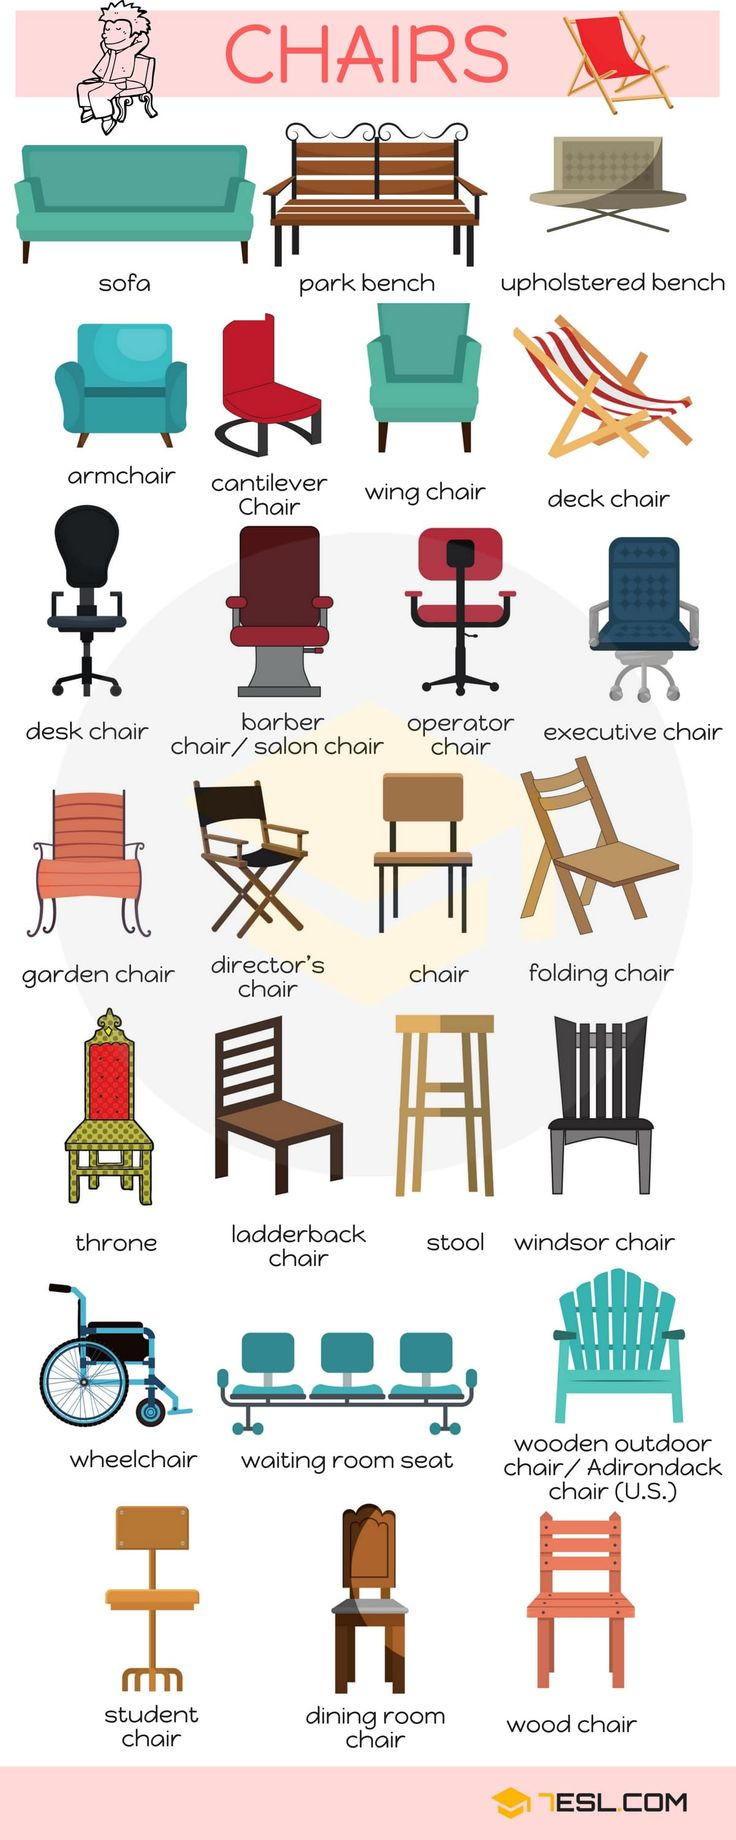 Chairs Vocabulary in English